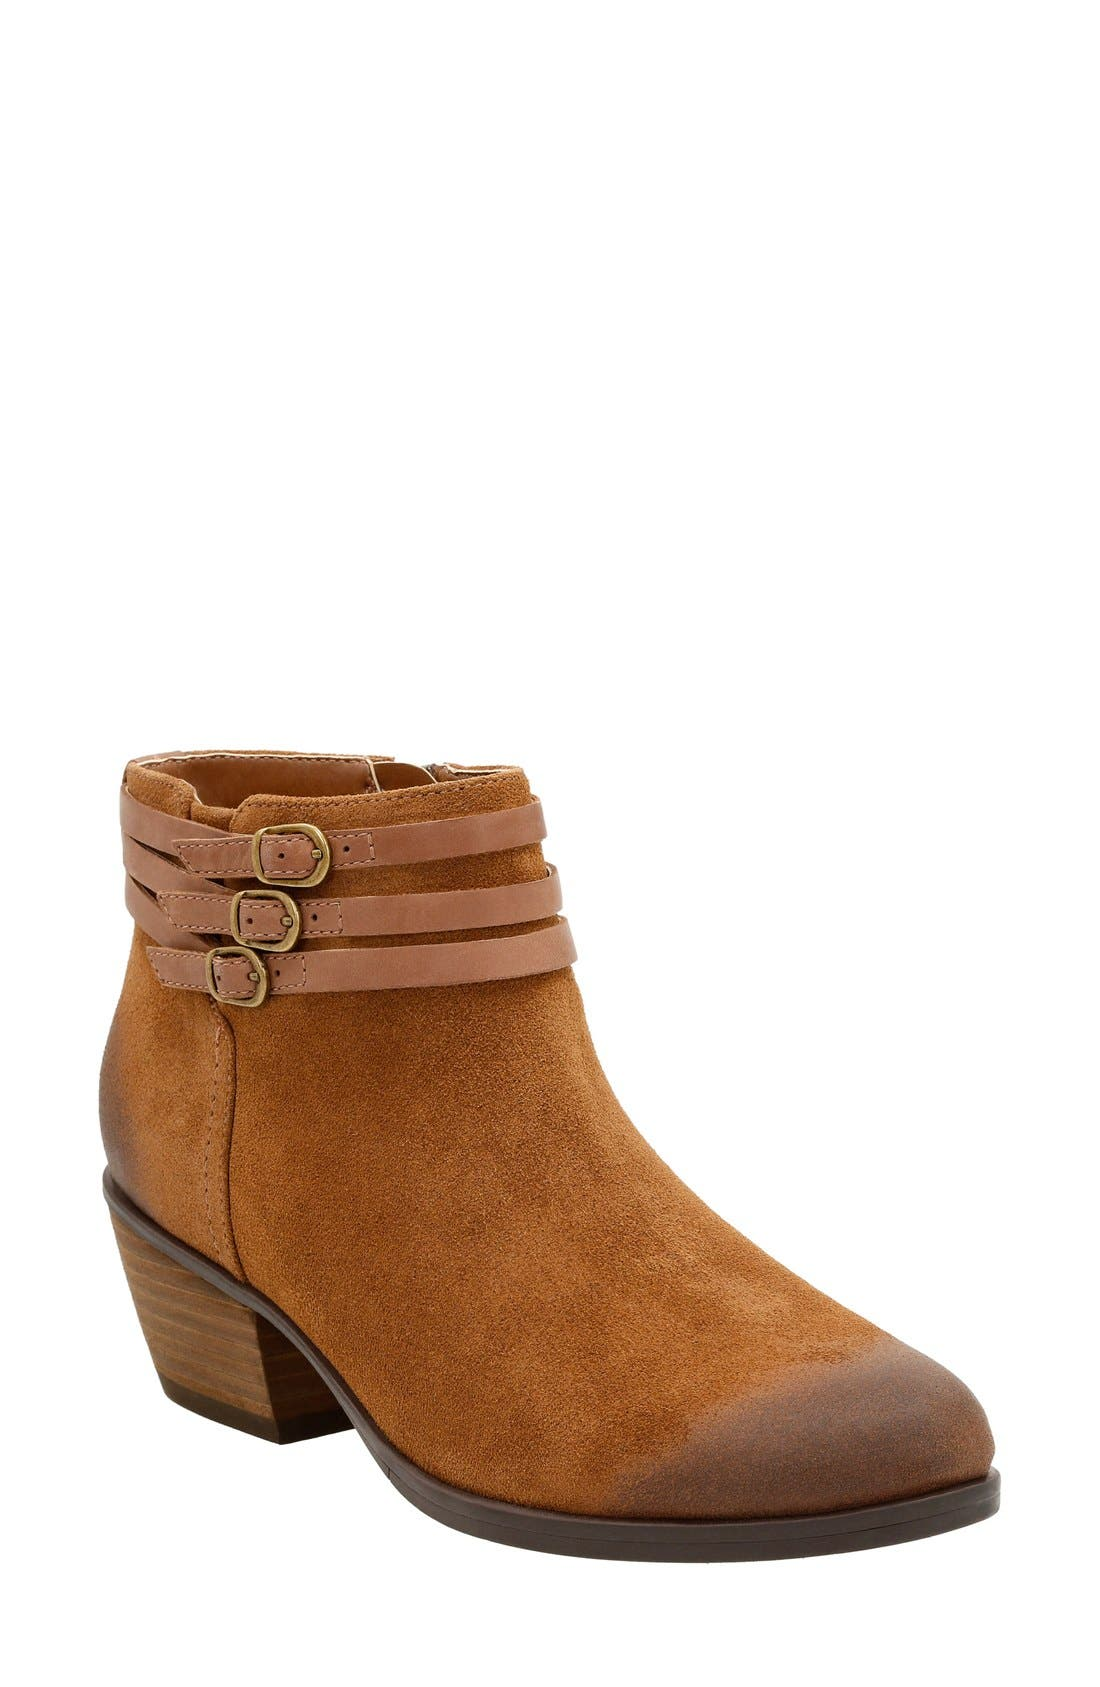 'Gelata Siena' Ankle Boot,                             Main thumbnail 1, color,                             215